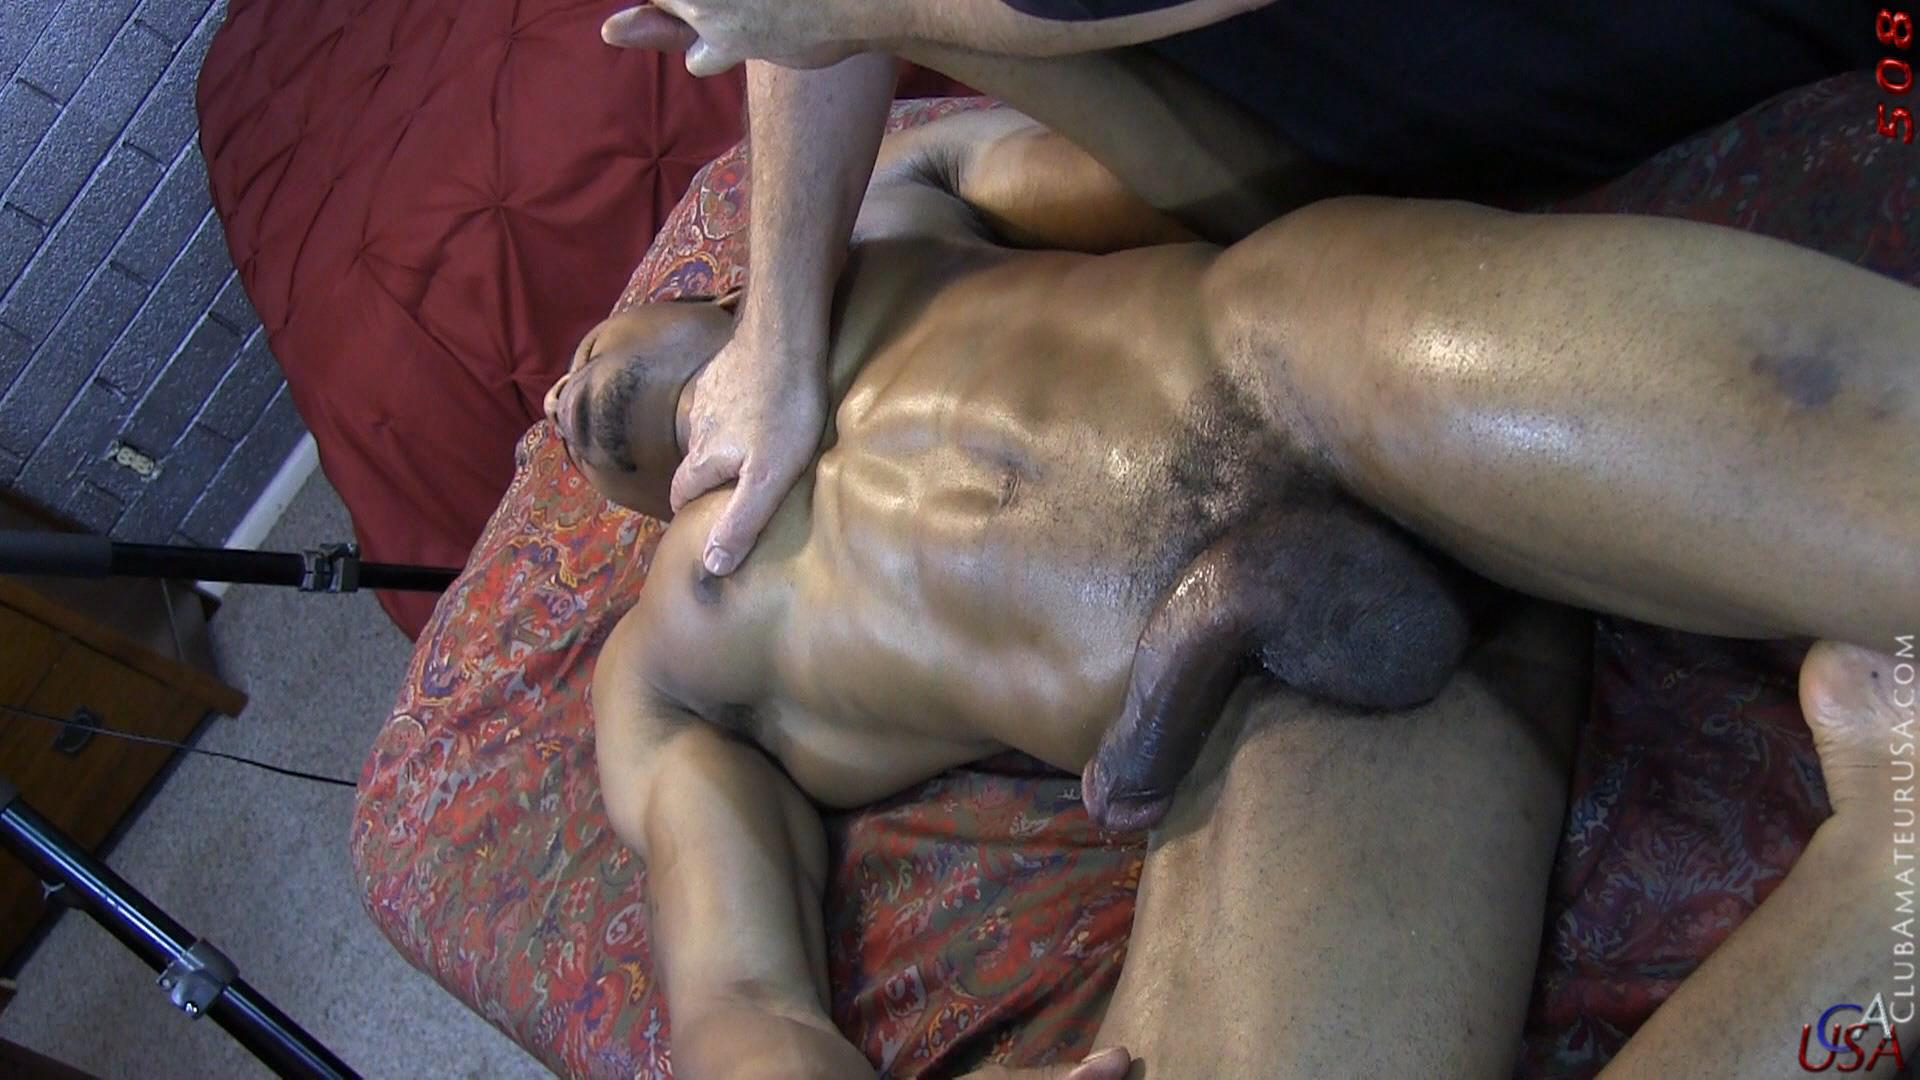 ung dick 4 hand gay massage